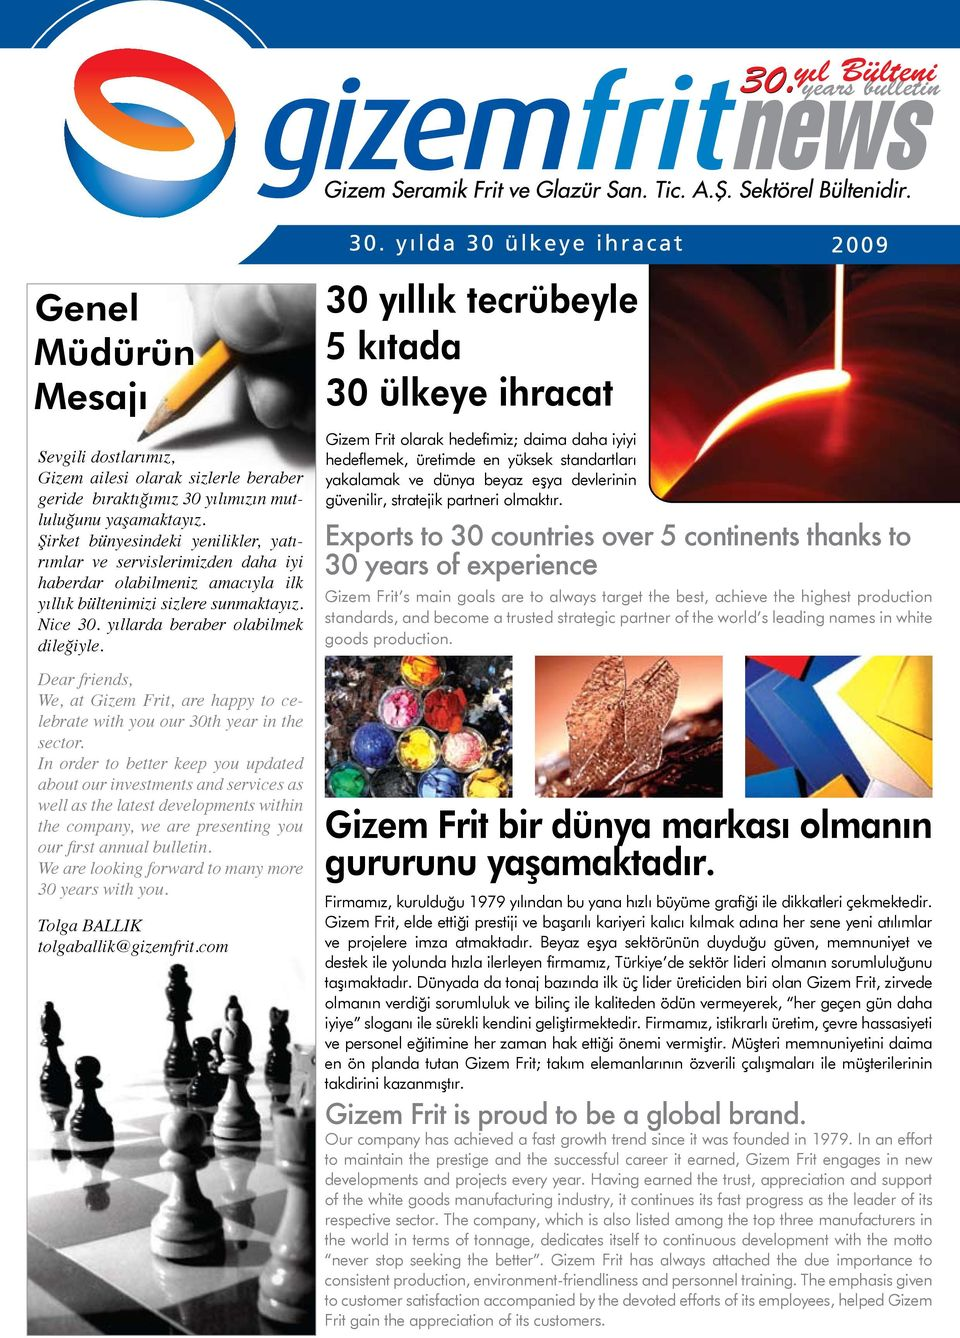 Dear friends, We, at Gizem Frit, are happy to celebrate with you our 30th year in the sector.